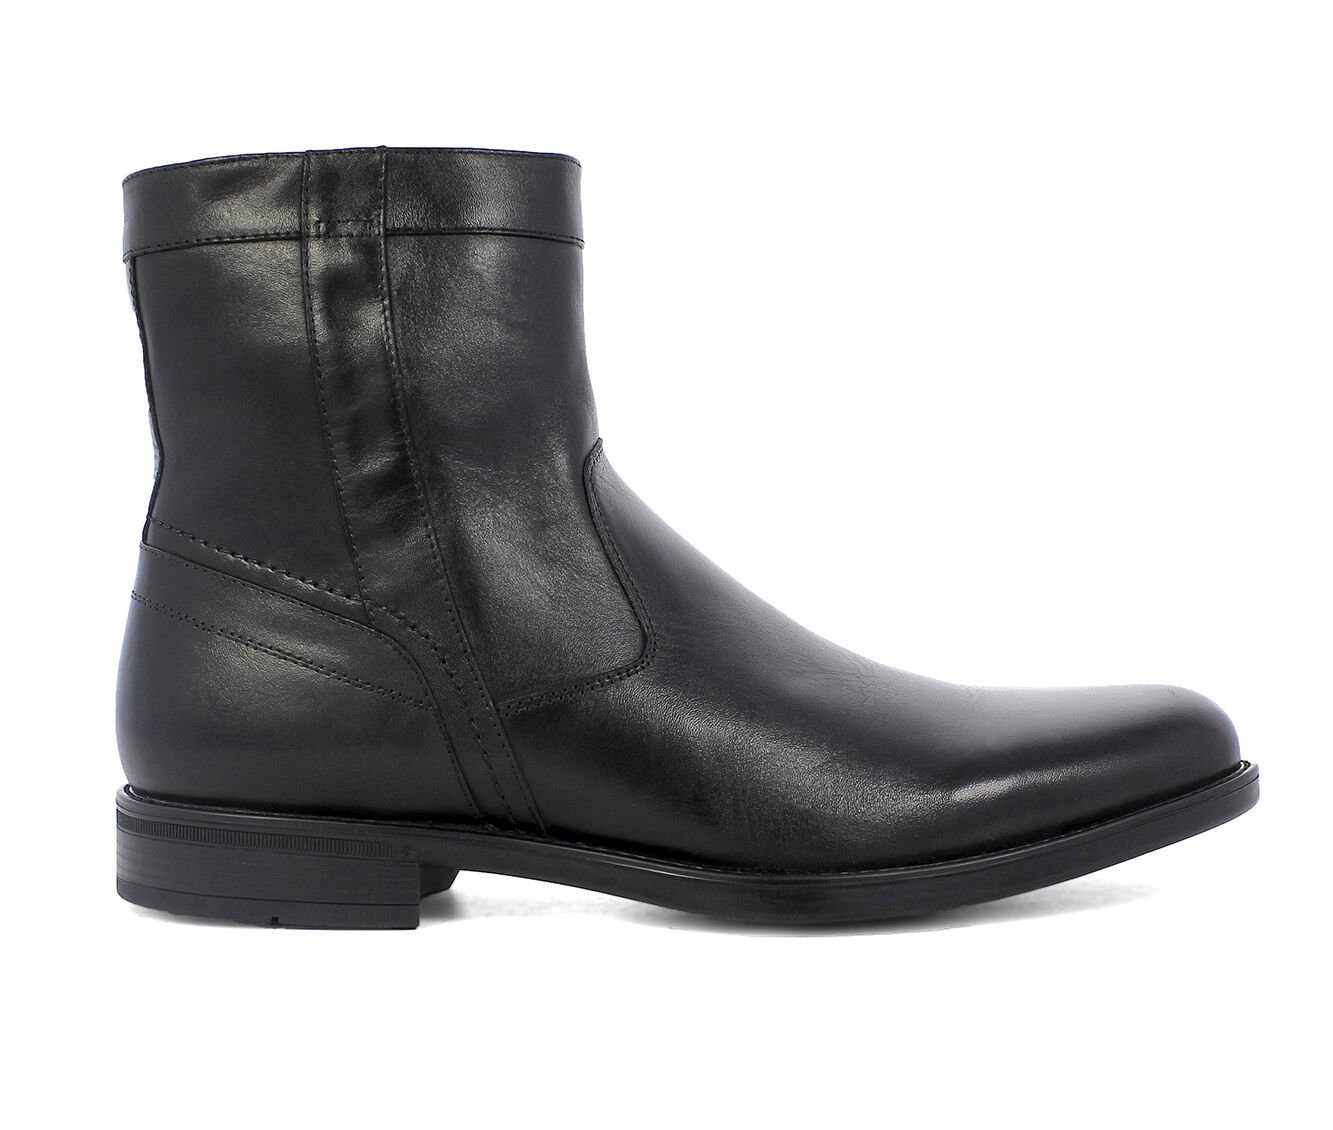 In Stock Men's Florsheim Midtown Zip Dress Boots Black